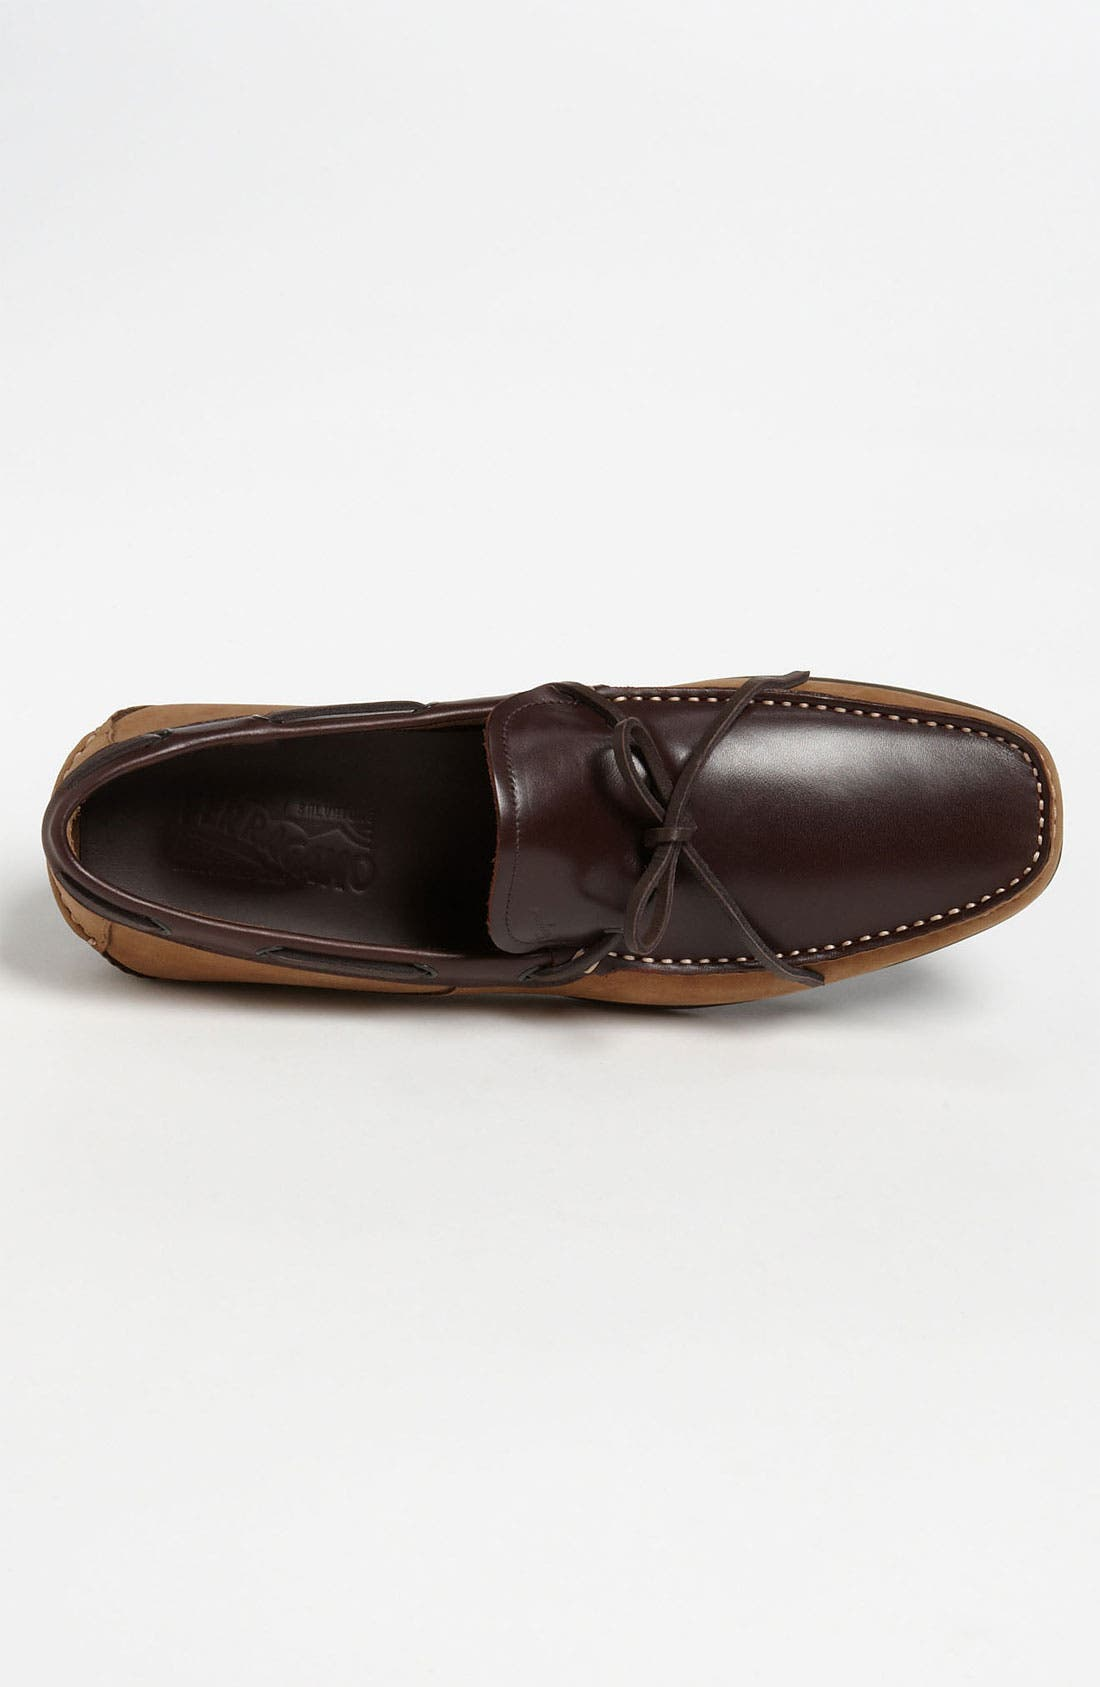 Alternate Image 3  - Salvatore Ferragamo 'Mango' Driving Shoe